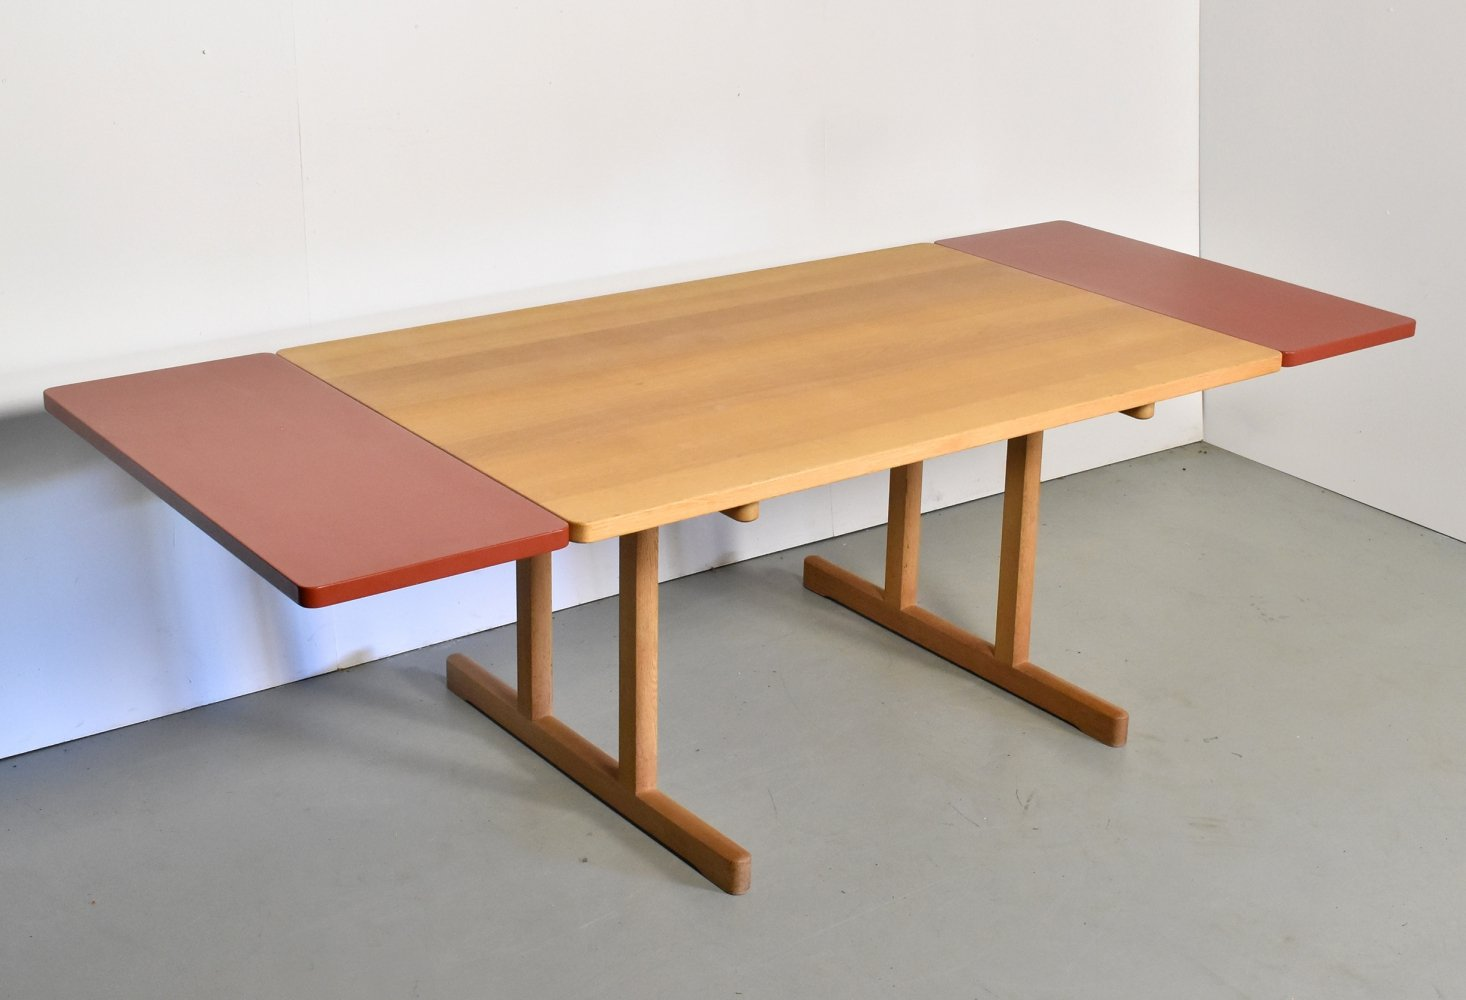 Shaker table by Børge Mogensen for Fredericia with red extension leaves, 1970s